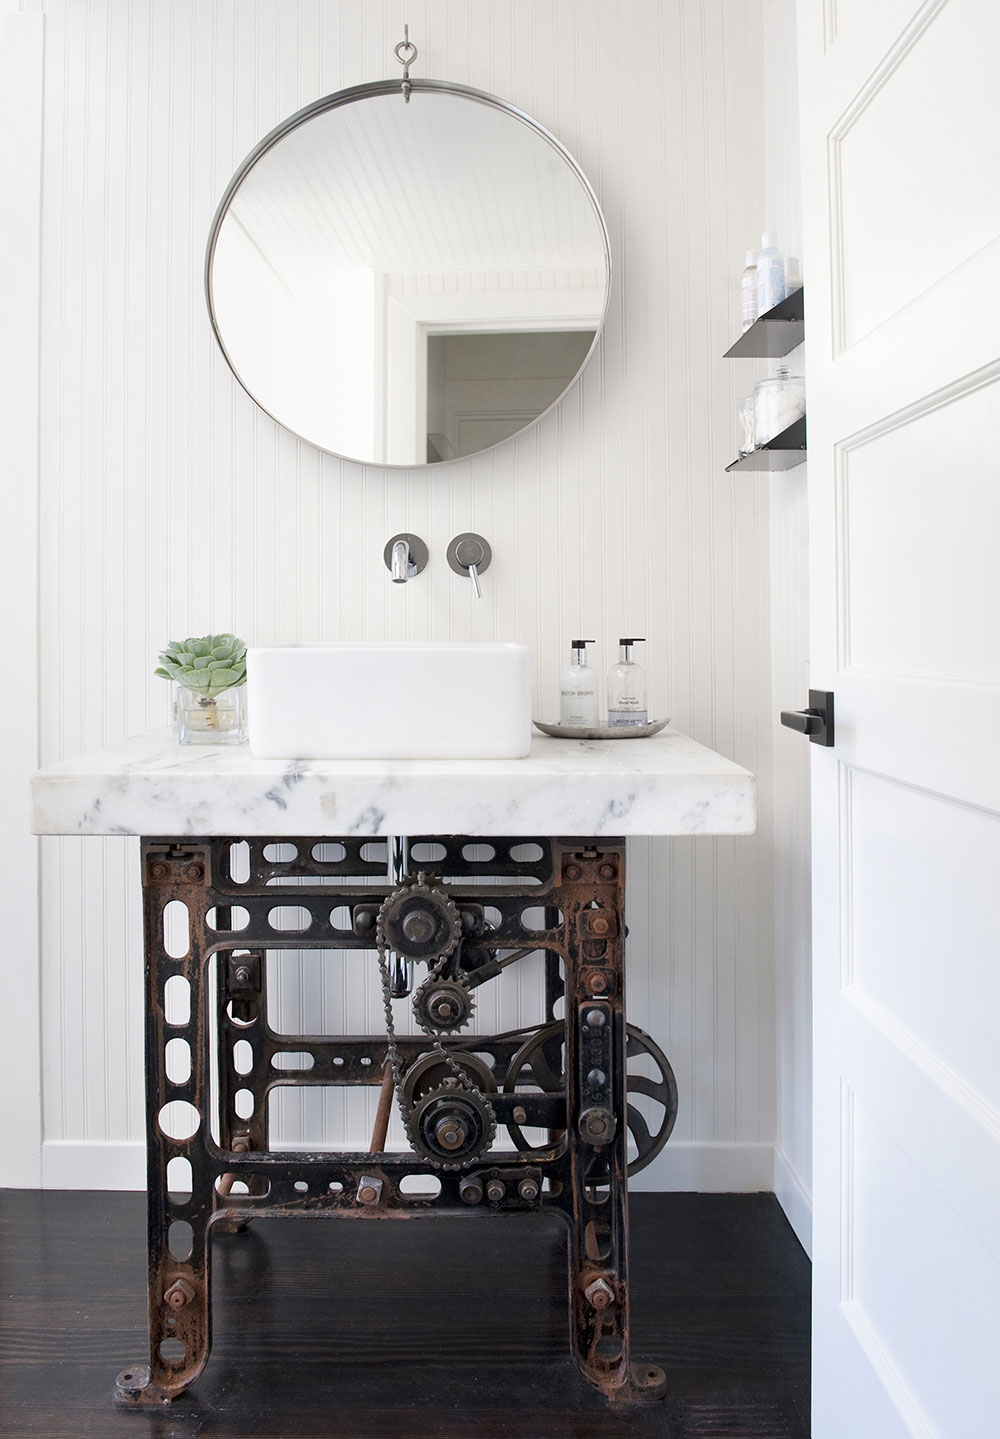 These Industrial Bathroom Vanity Ideas Are Transporting Us Back in Time | Hunker